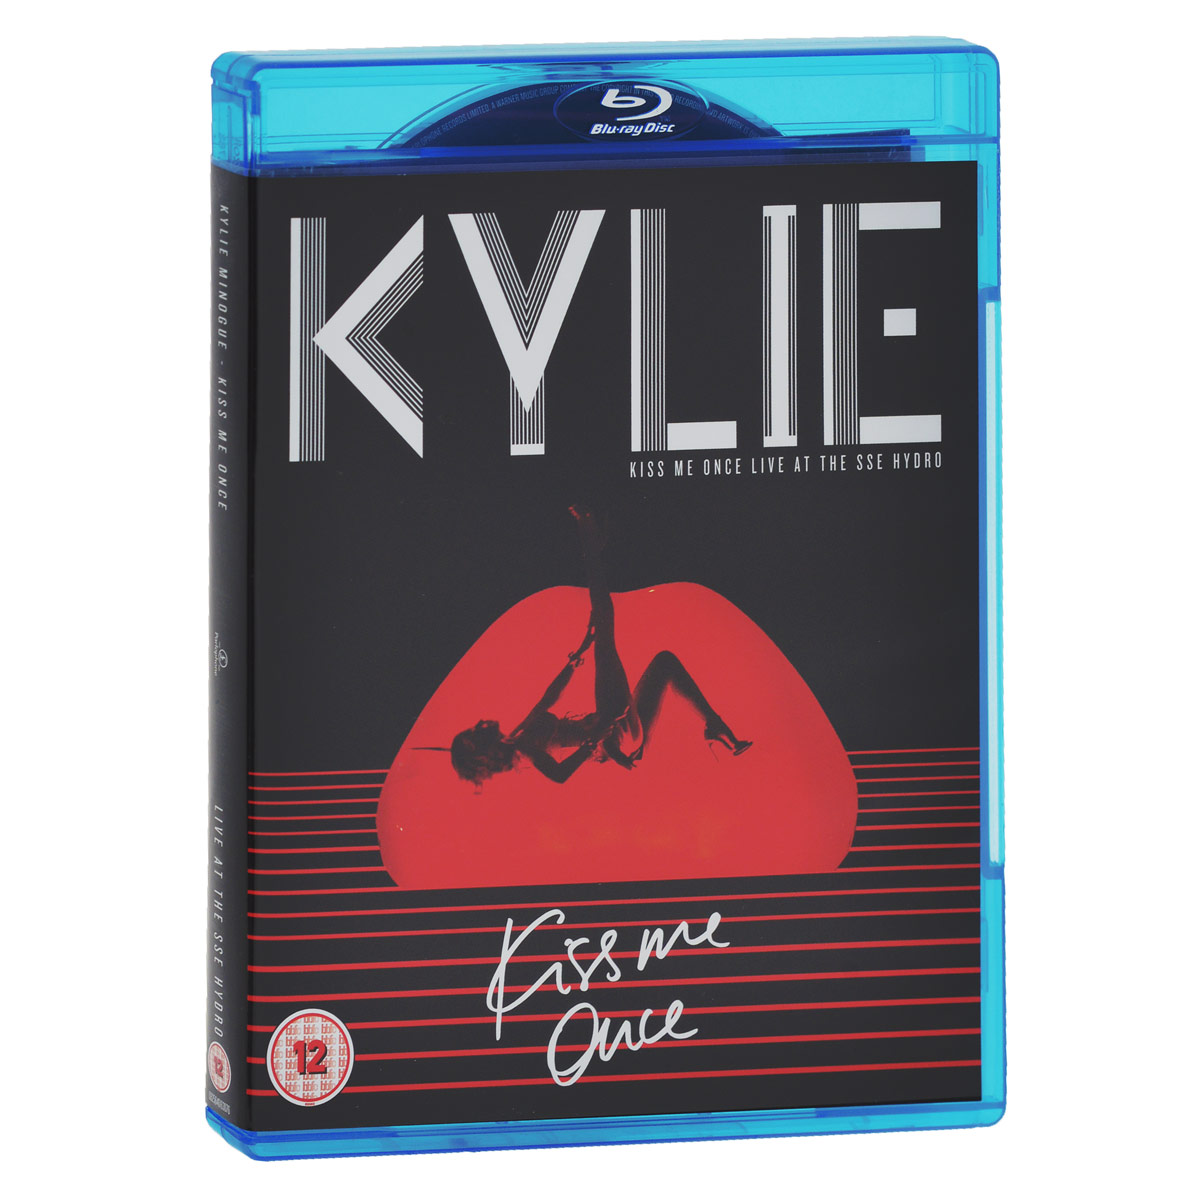 Кайли Миноуг Kylie Minogue. Kiss Me Once Live At The SSE Hydro (2 CD + Blu-ray) europe live at shepherd s bush london blu ray